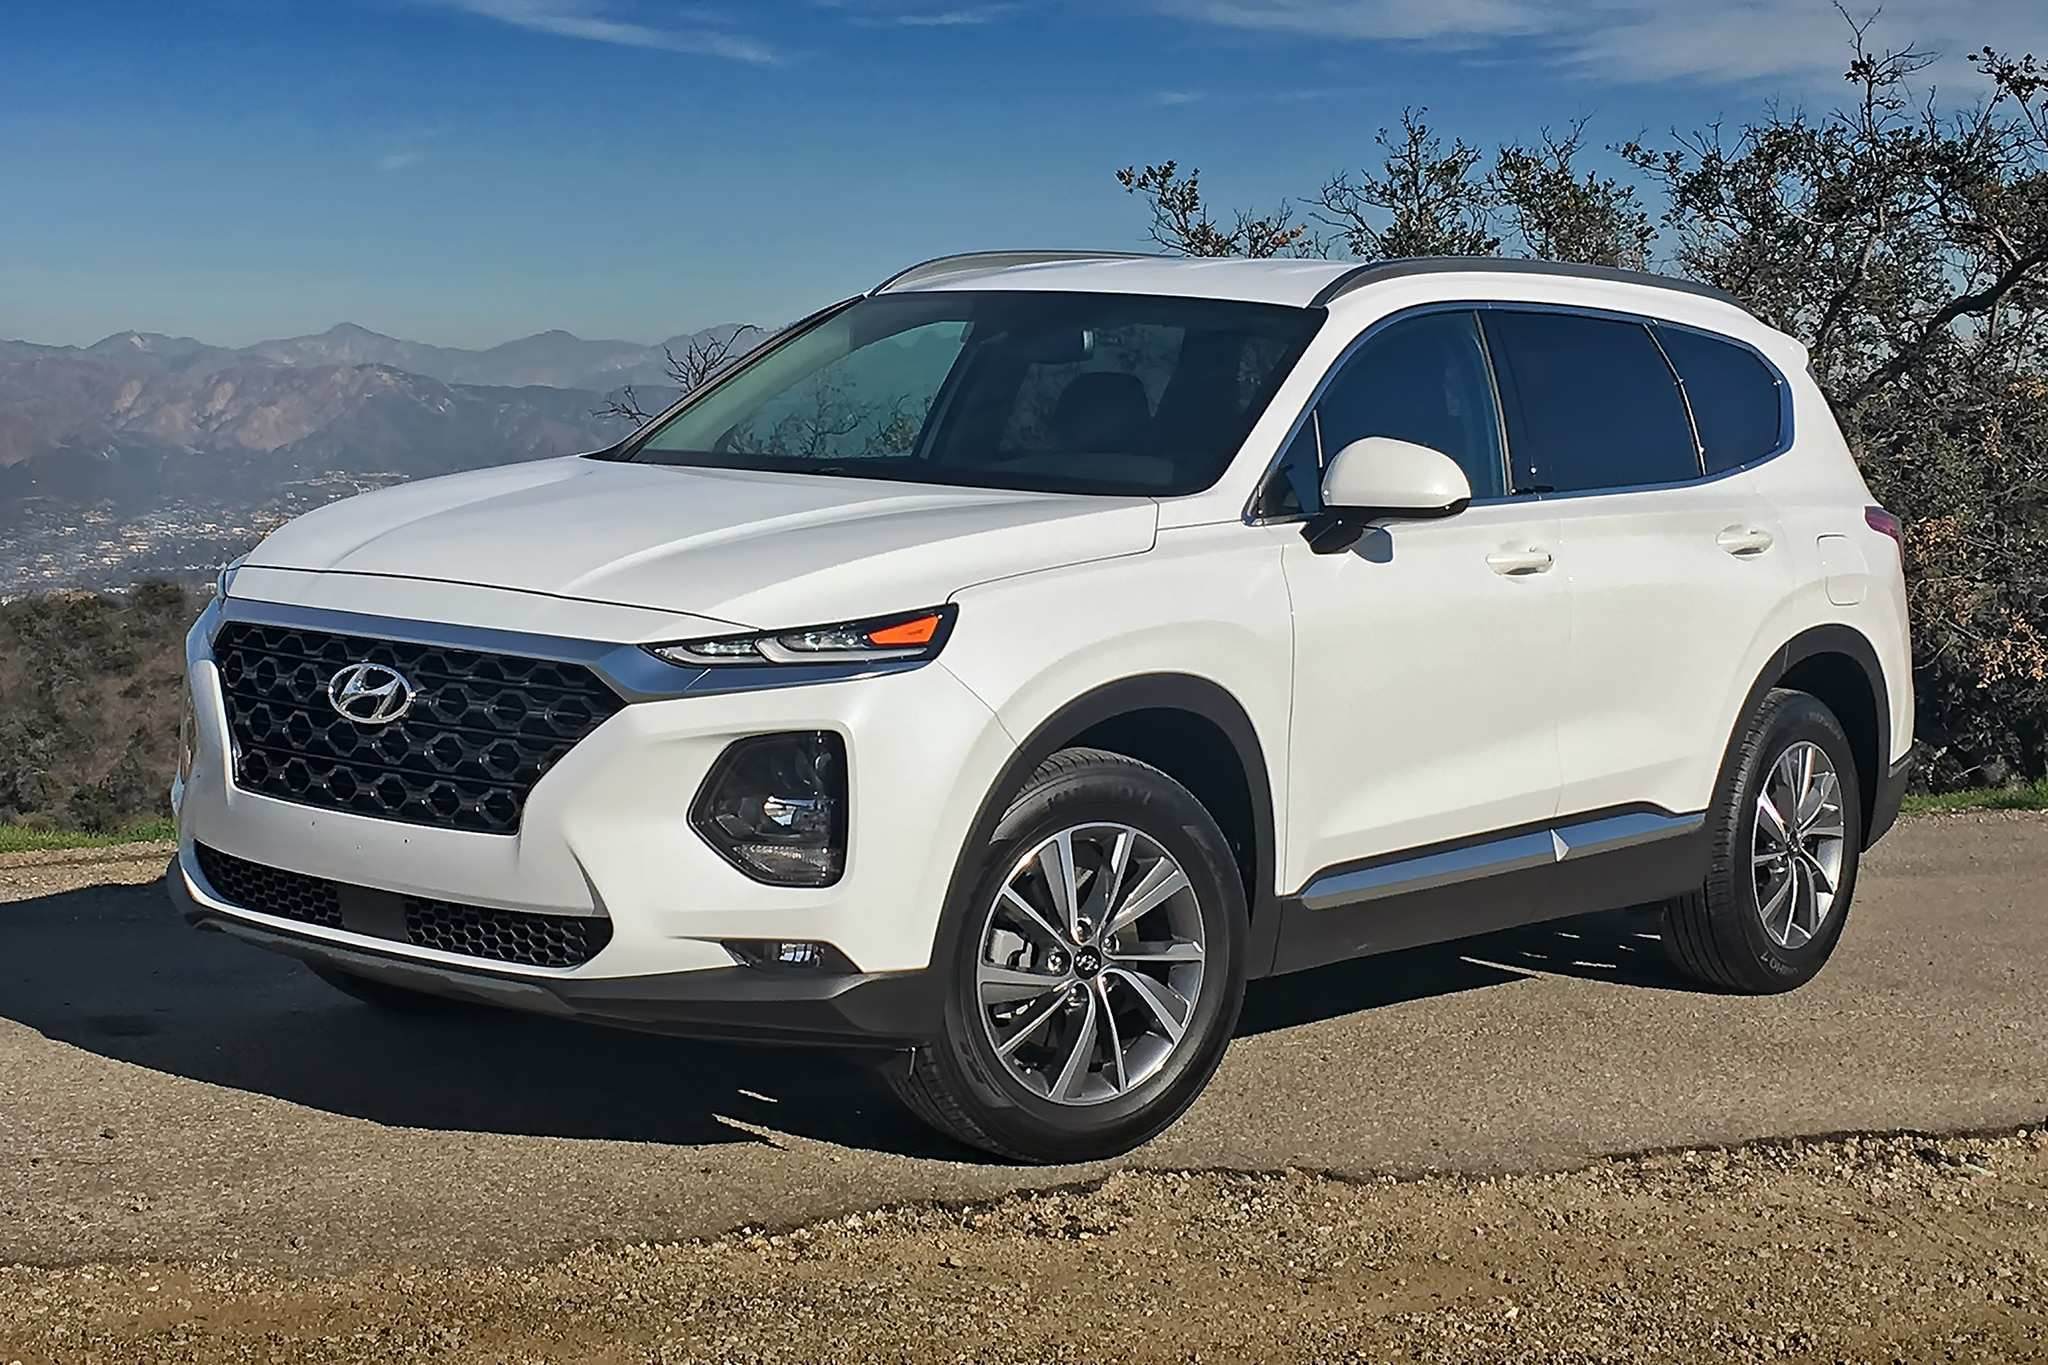 55 All New 2019 Hyundai Santa Fe Exterior And Interior